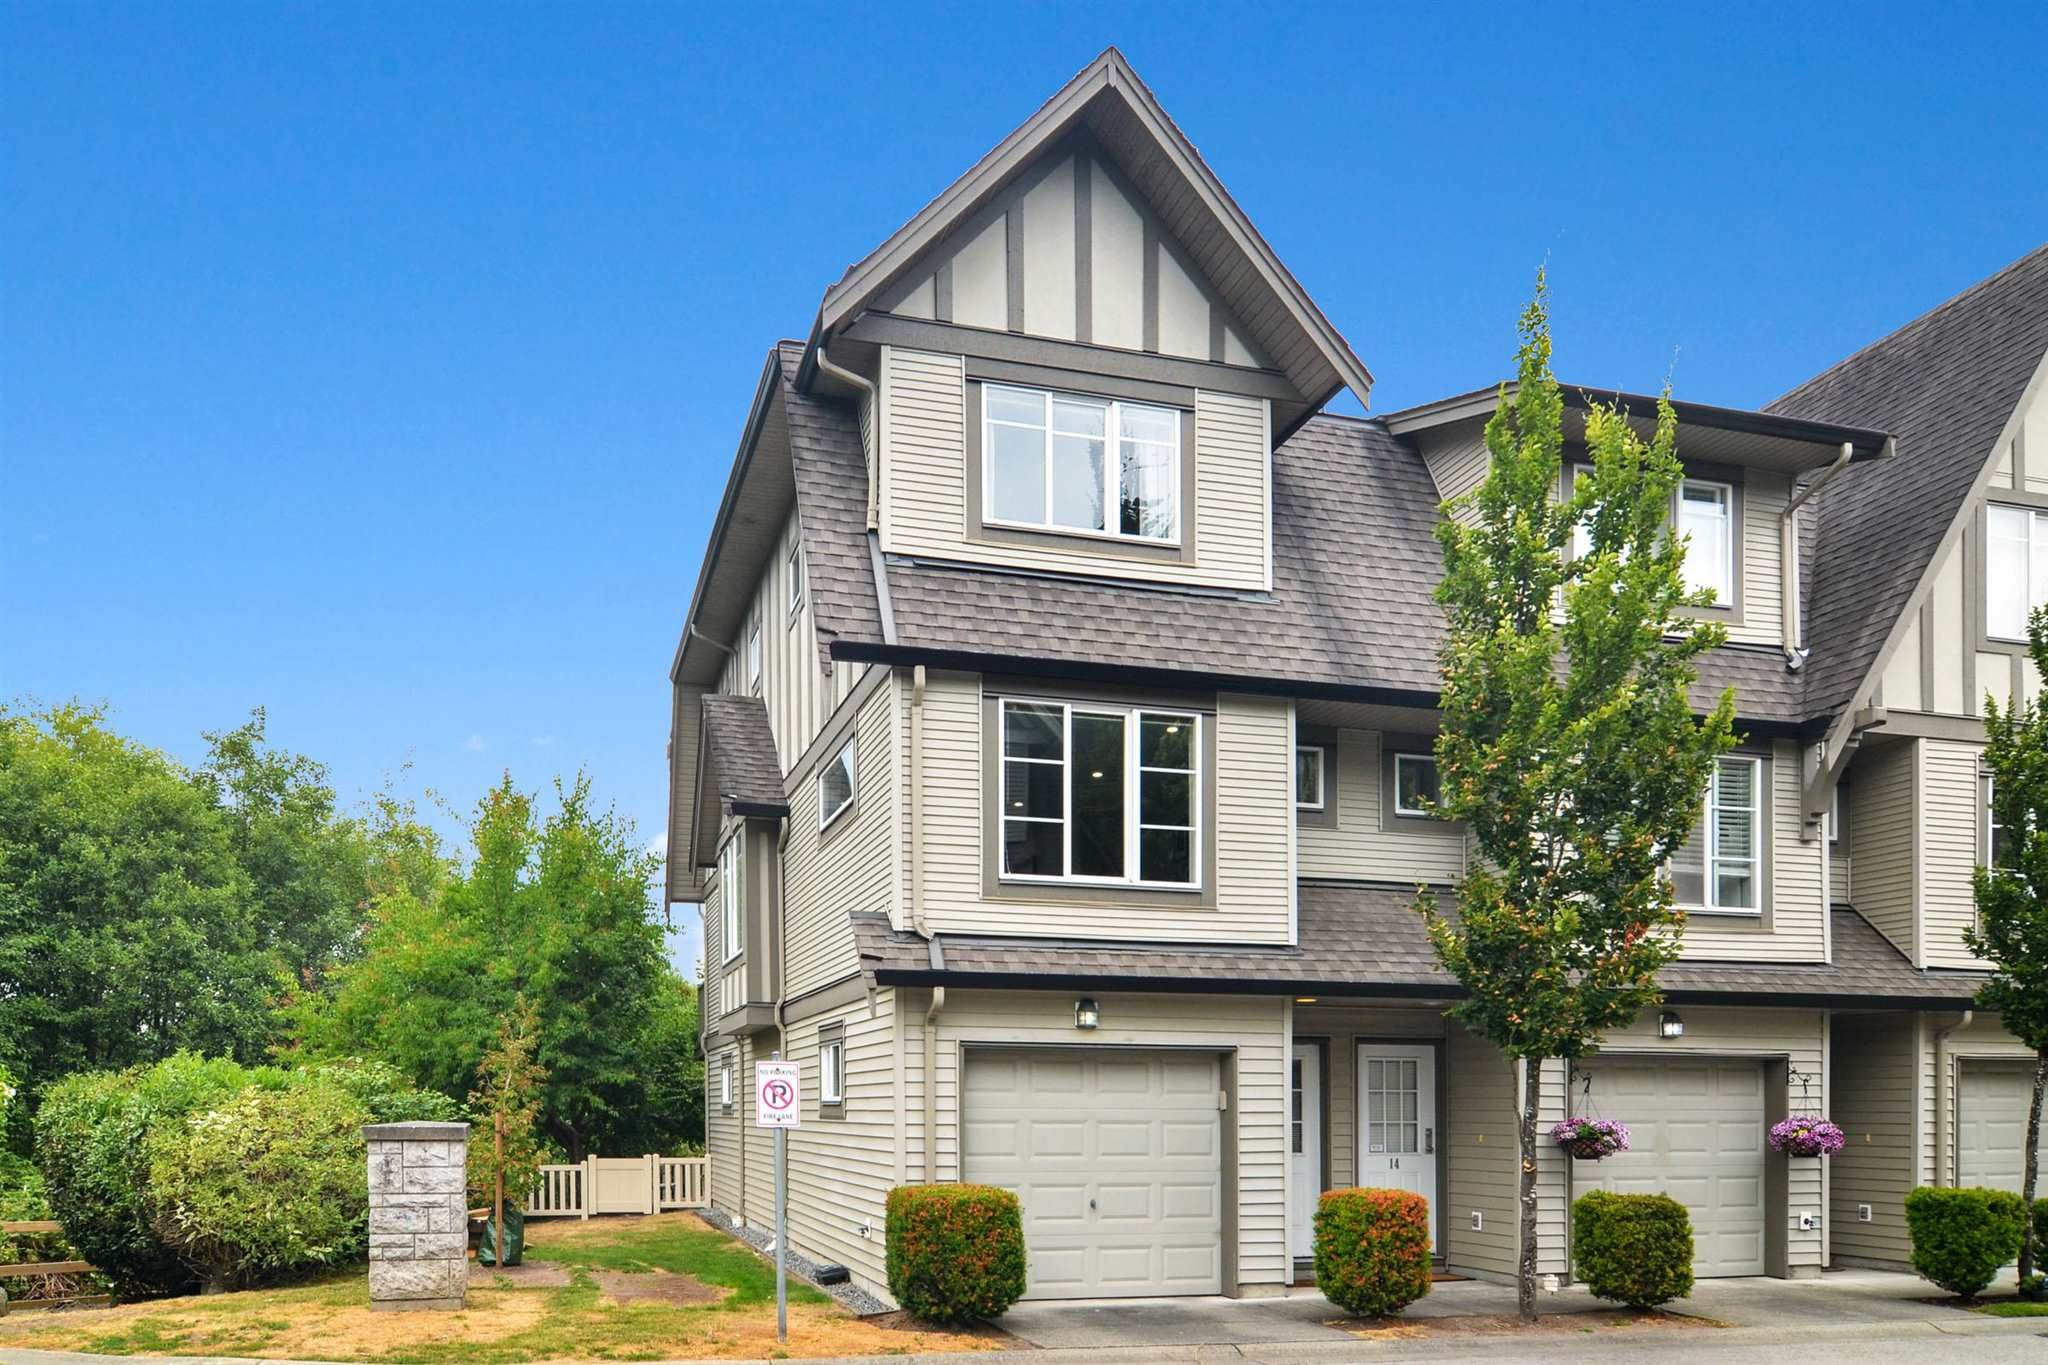 """Main Photo: 15 15175 62A Avenue in Surrey: Sullivan Station Townhouse for sale in """"Brooklands"""" : MLS®# R2603047"""